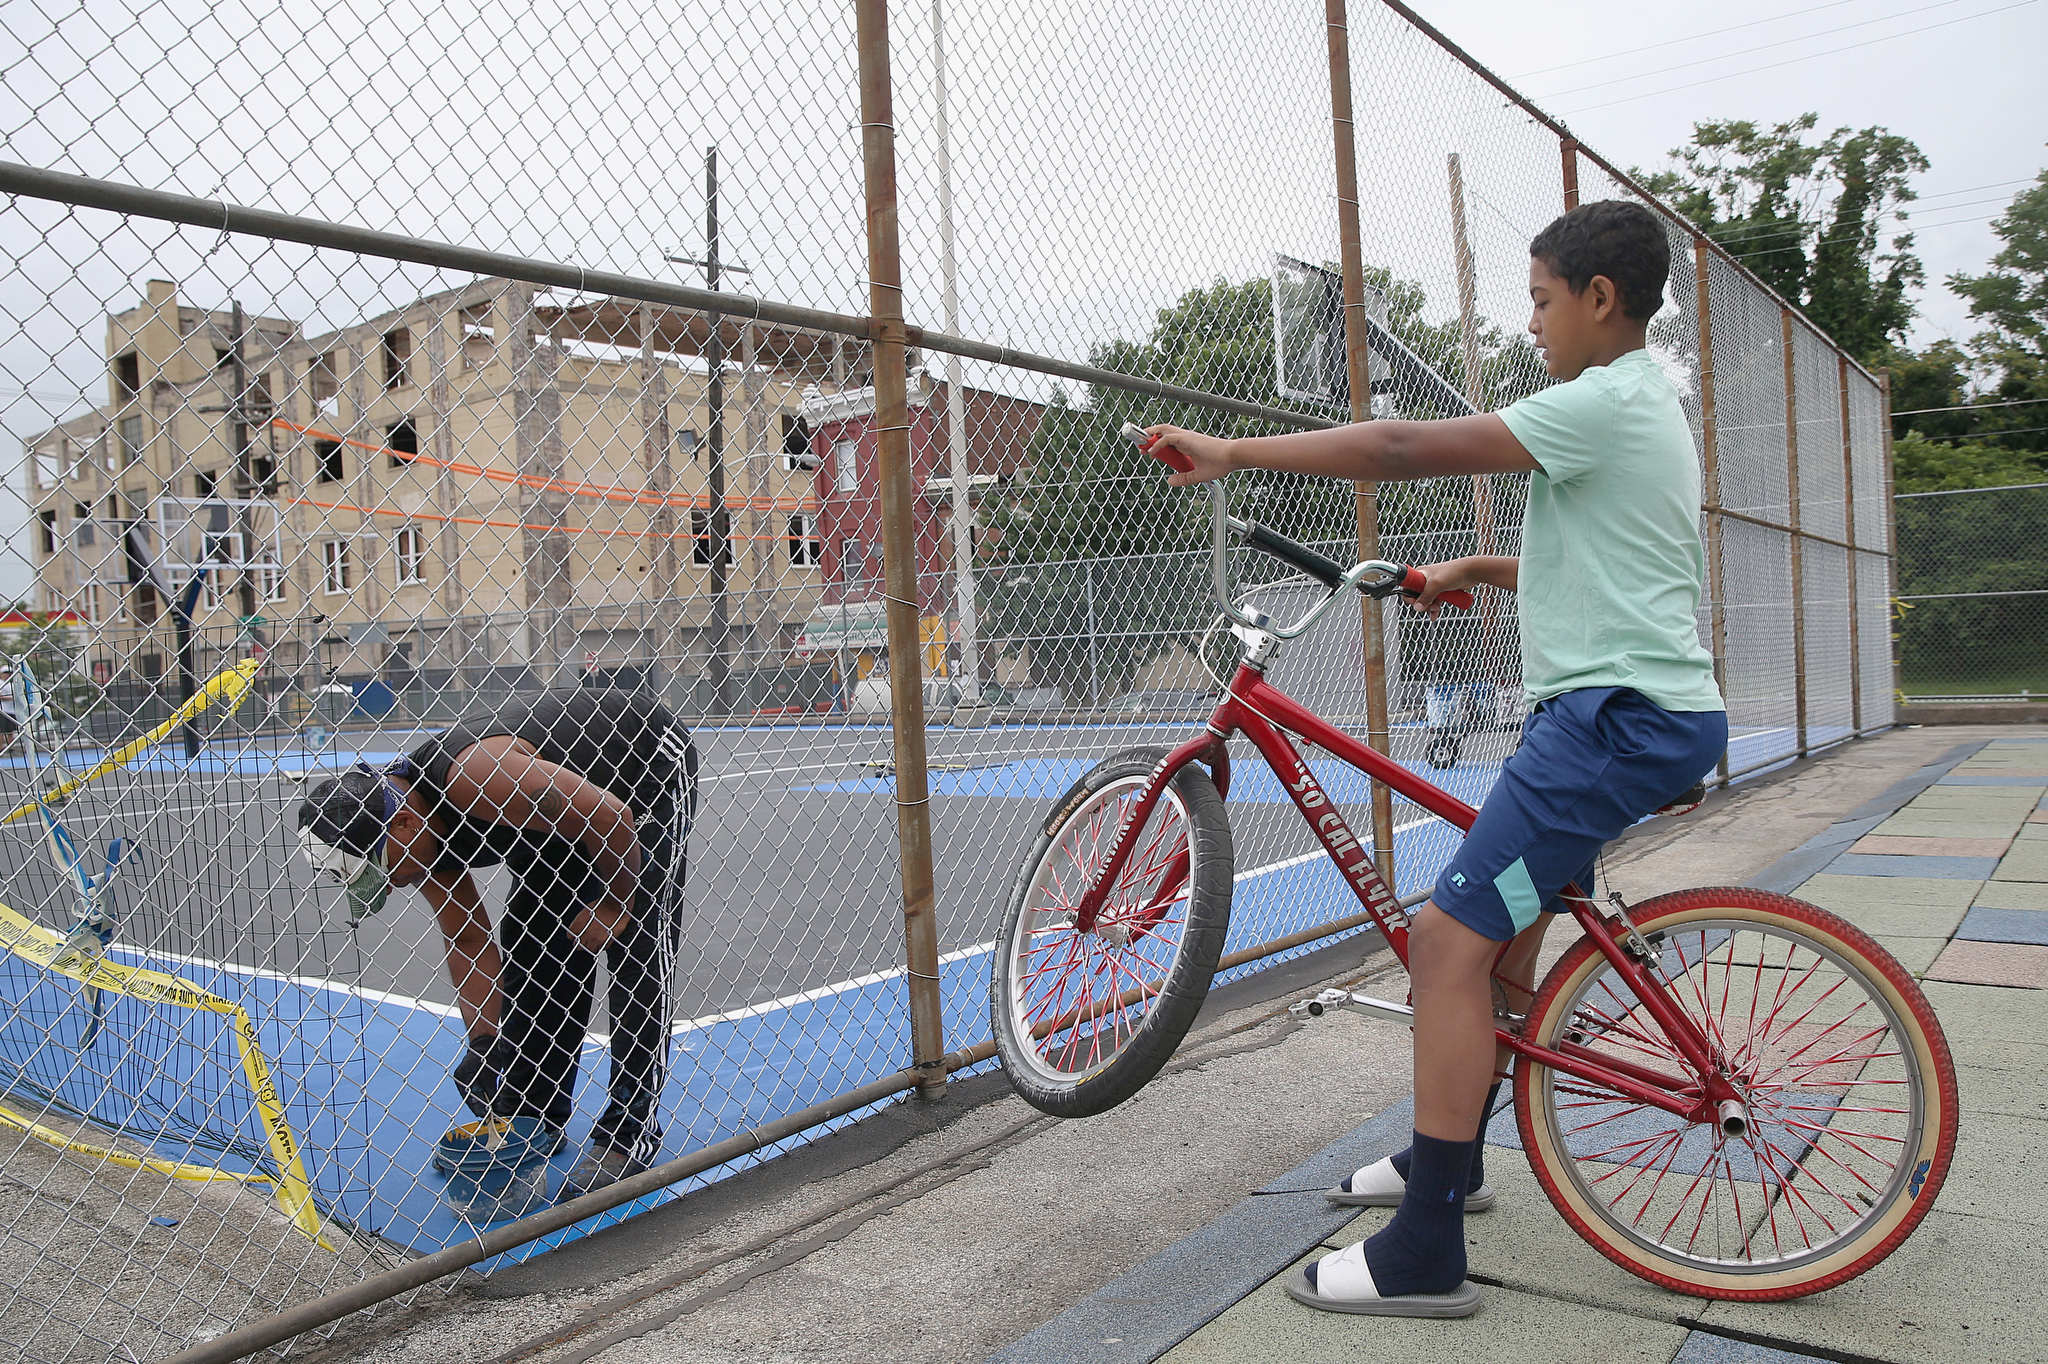 Troy Walker, 11, right, who attends the adjacent John F. Hartranft School Elementary School, speaks with Cass Construction worker Jack Wilmore as he paints the newly renovated basketball court at the playground at Eighth and Cumberland streets in North Philadelphia.